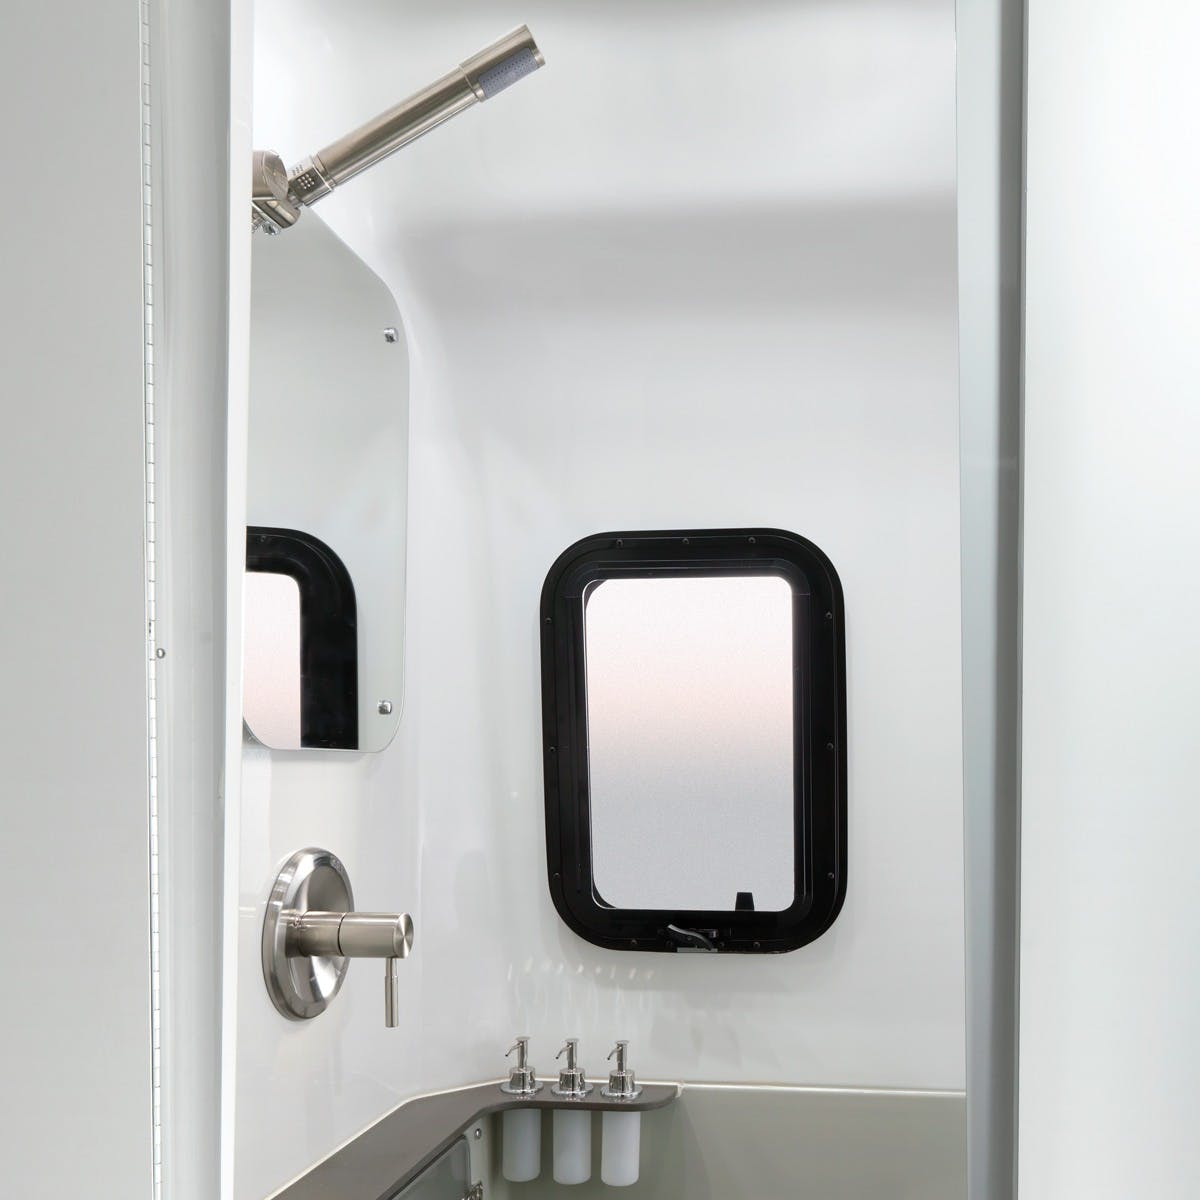 Airstream Travel Trailer rest room